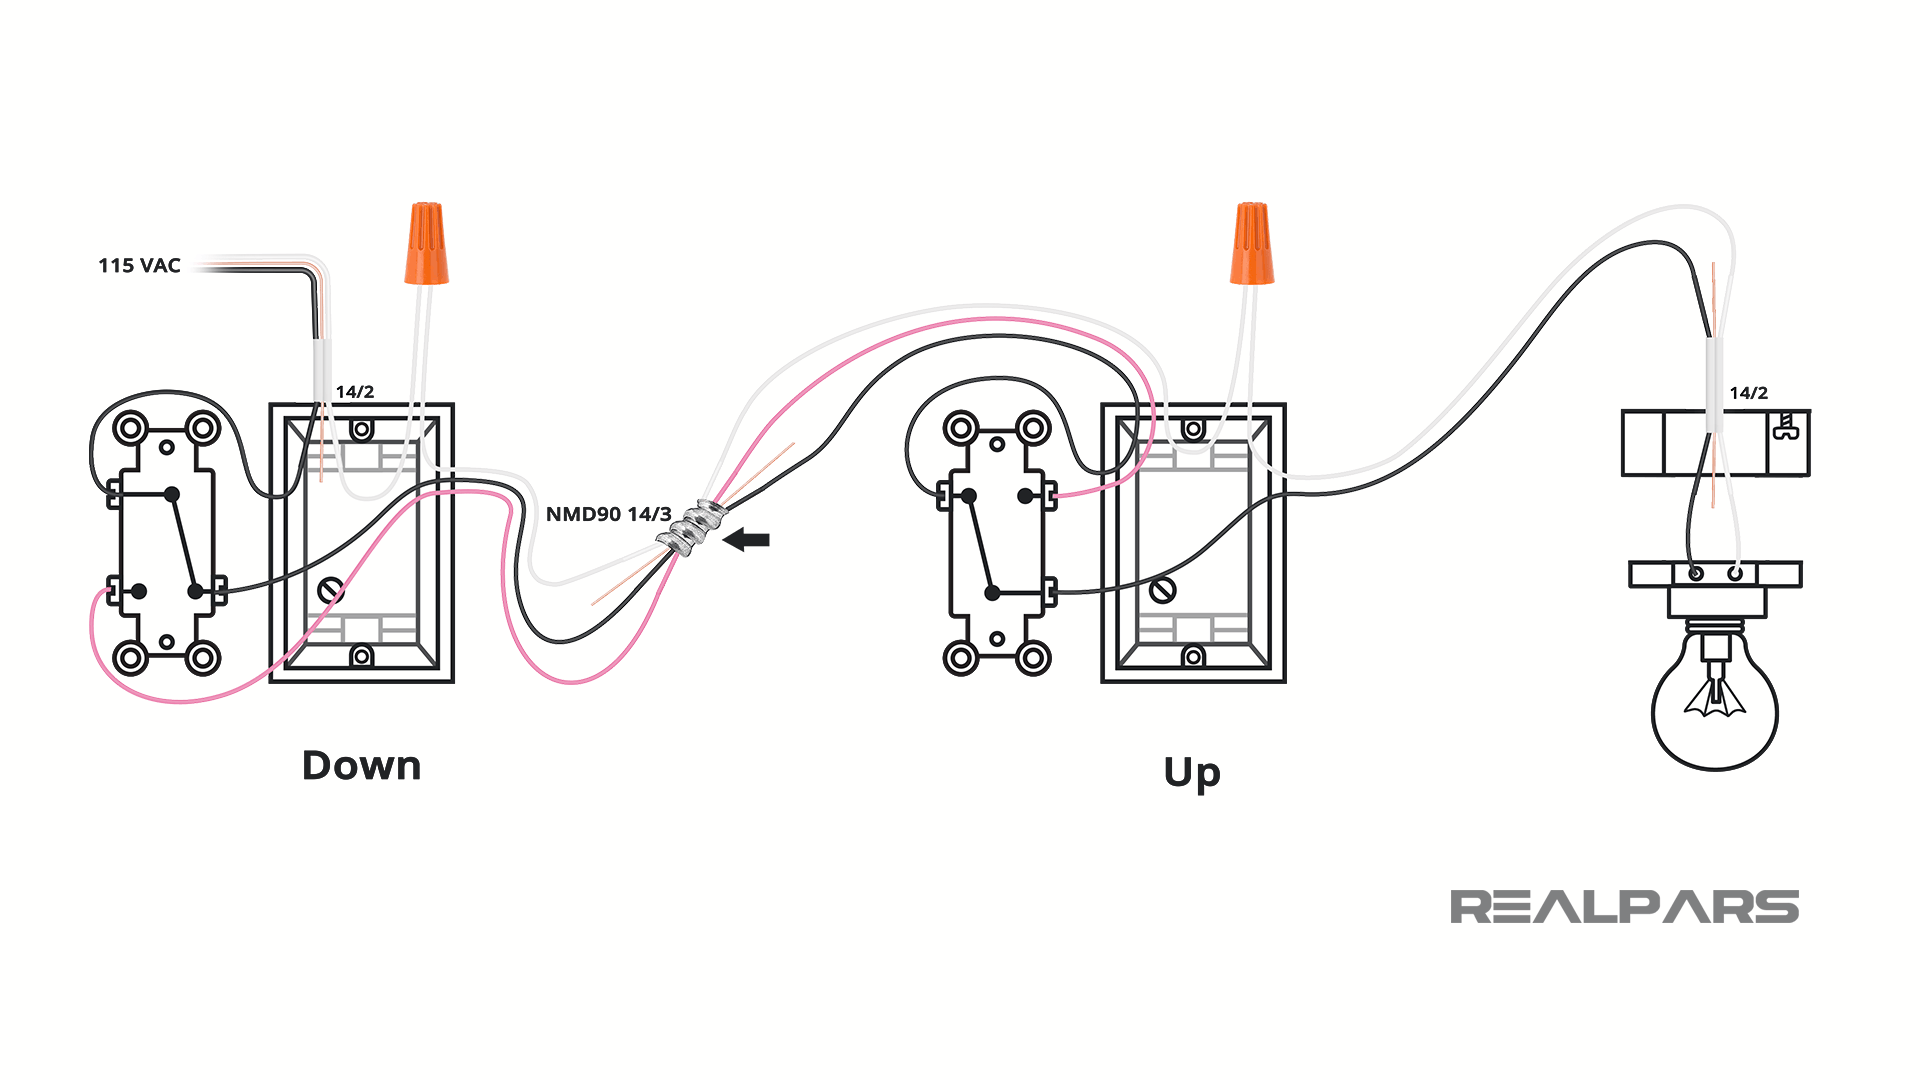 SPDT switch wiring explained